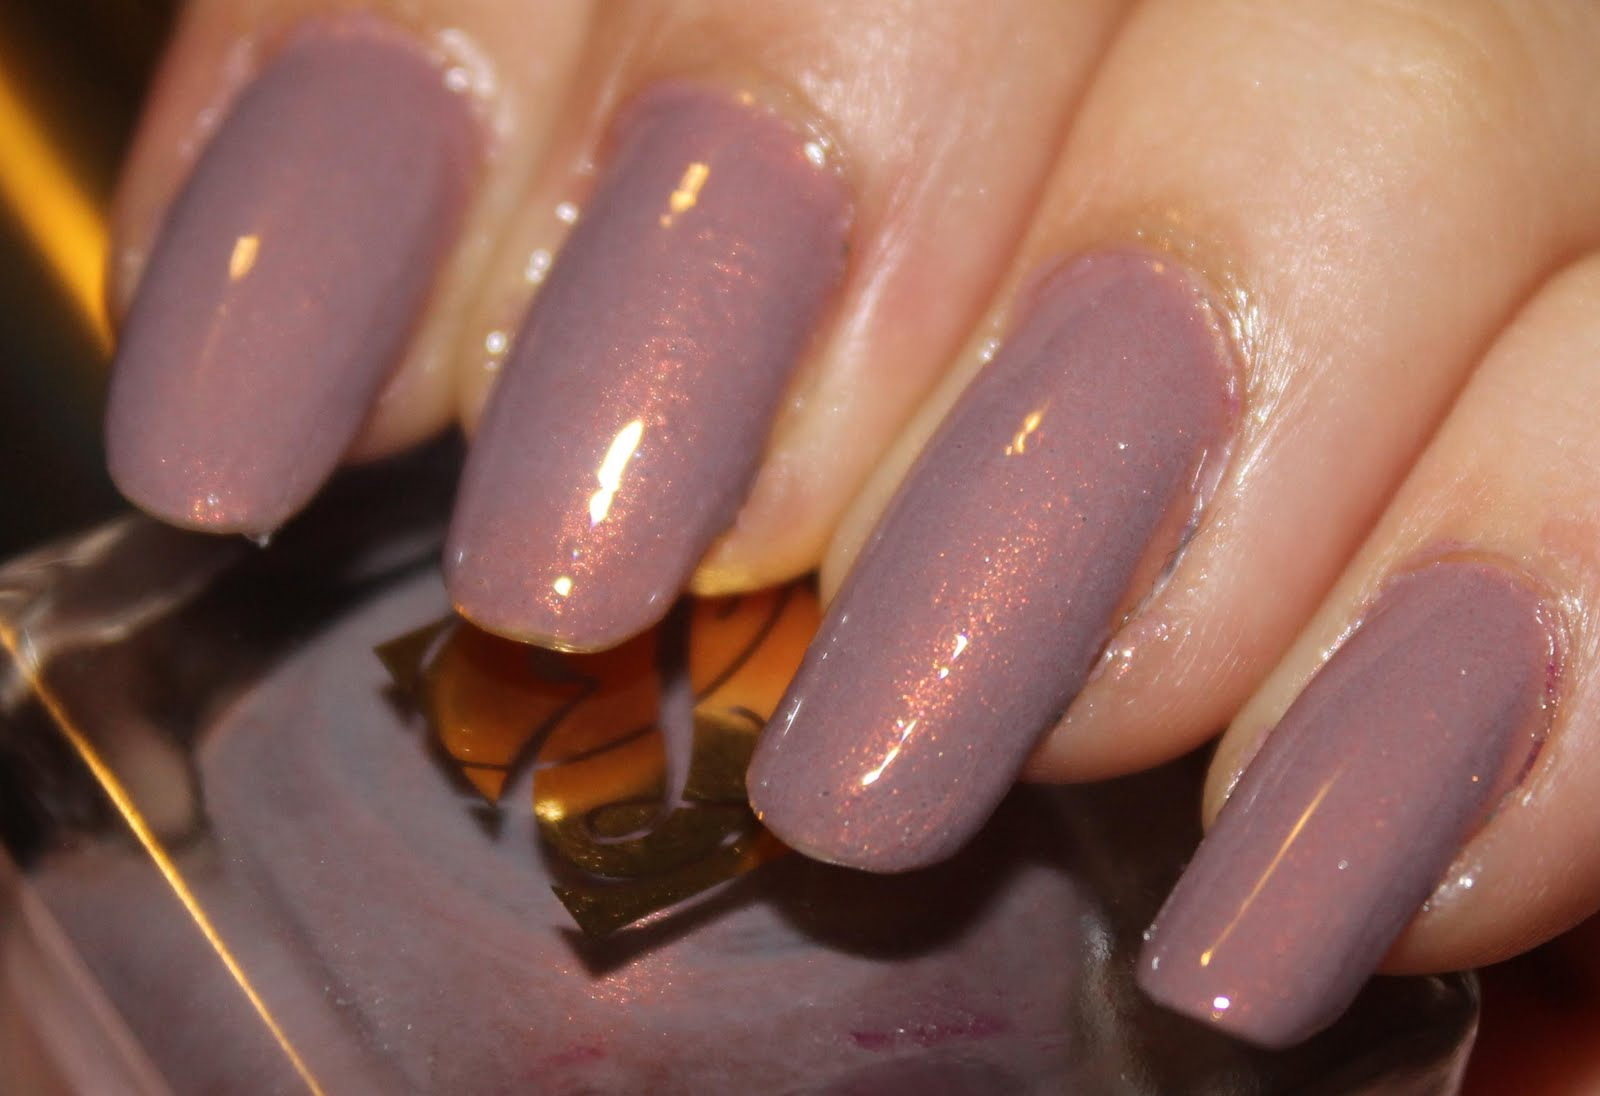 The Dark Side of Beauty: Estee Lauder \'Surreal Violet \' Nail Lacquer